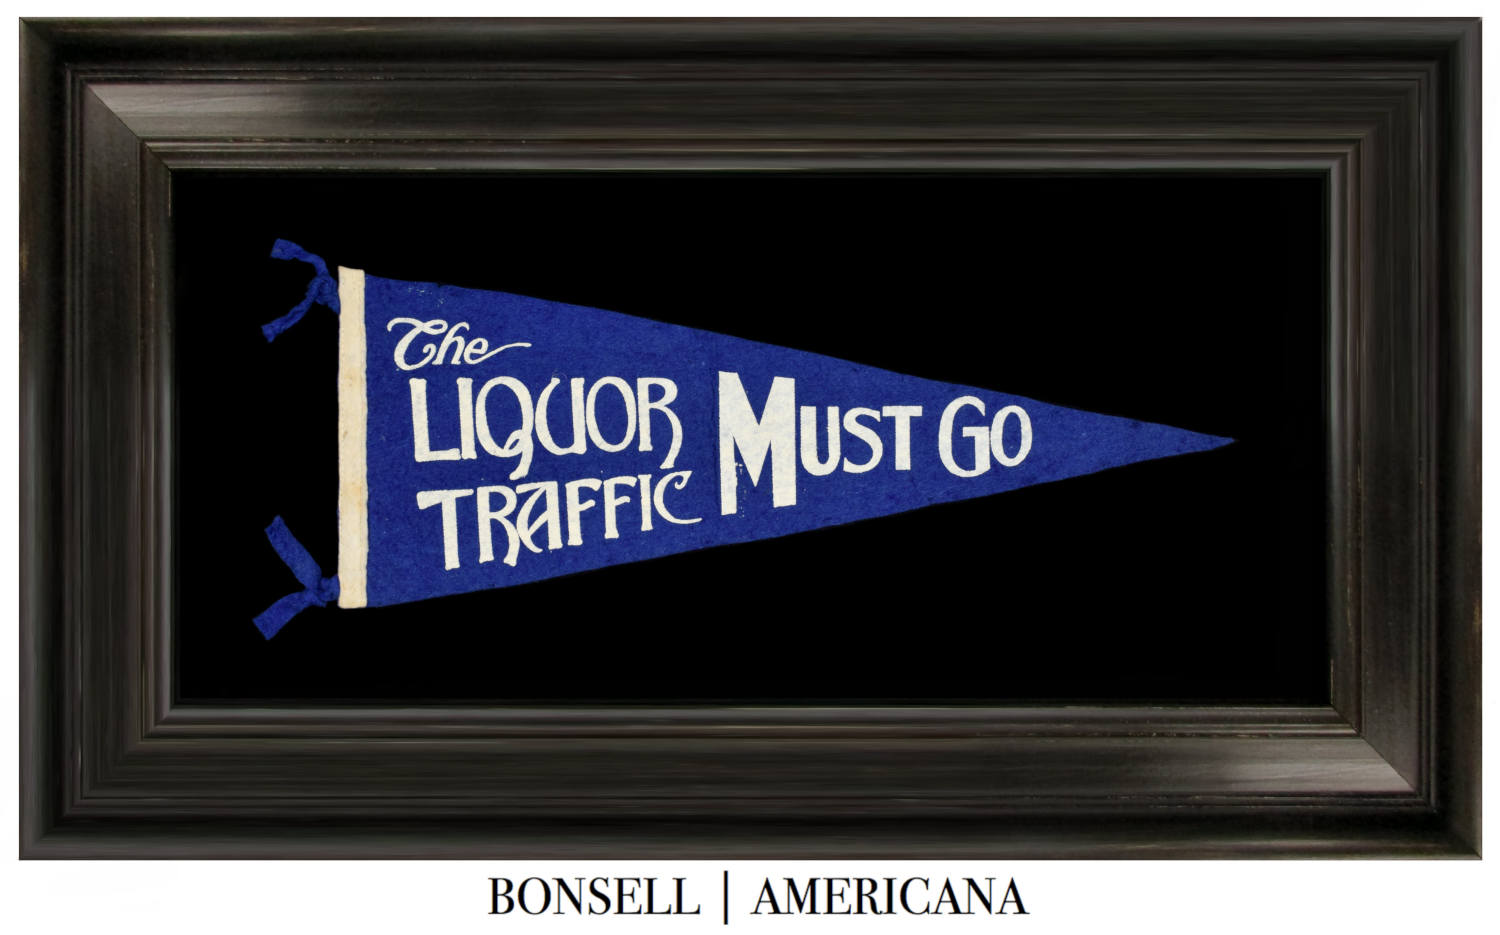 The Liquor Traffic Must Go Pennant